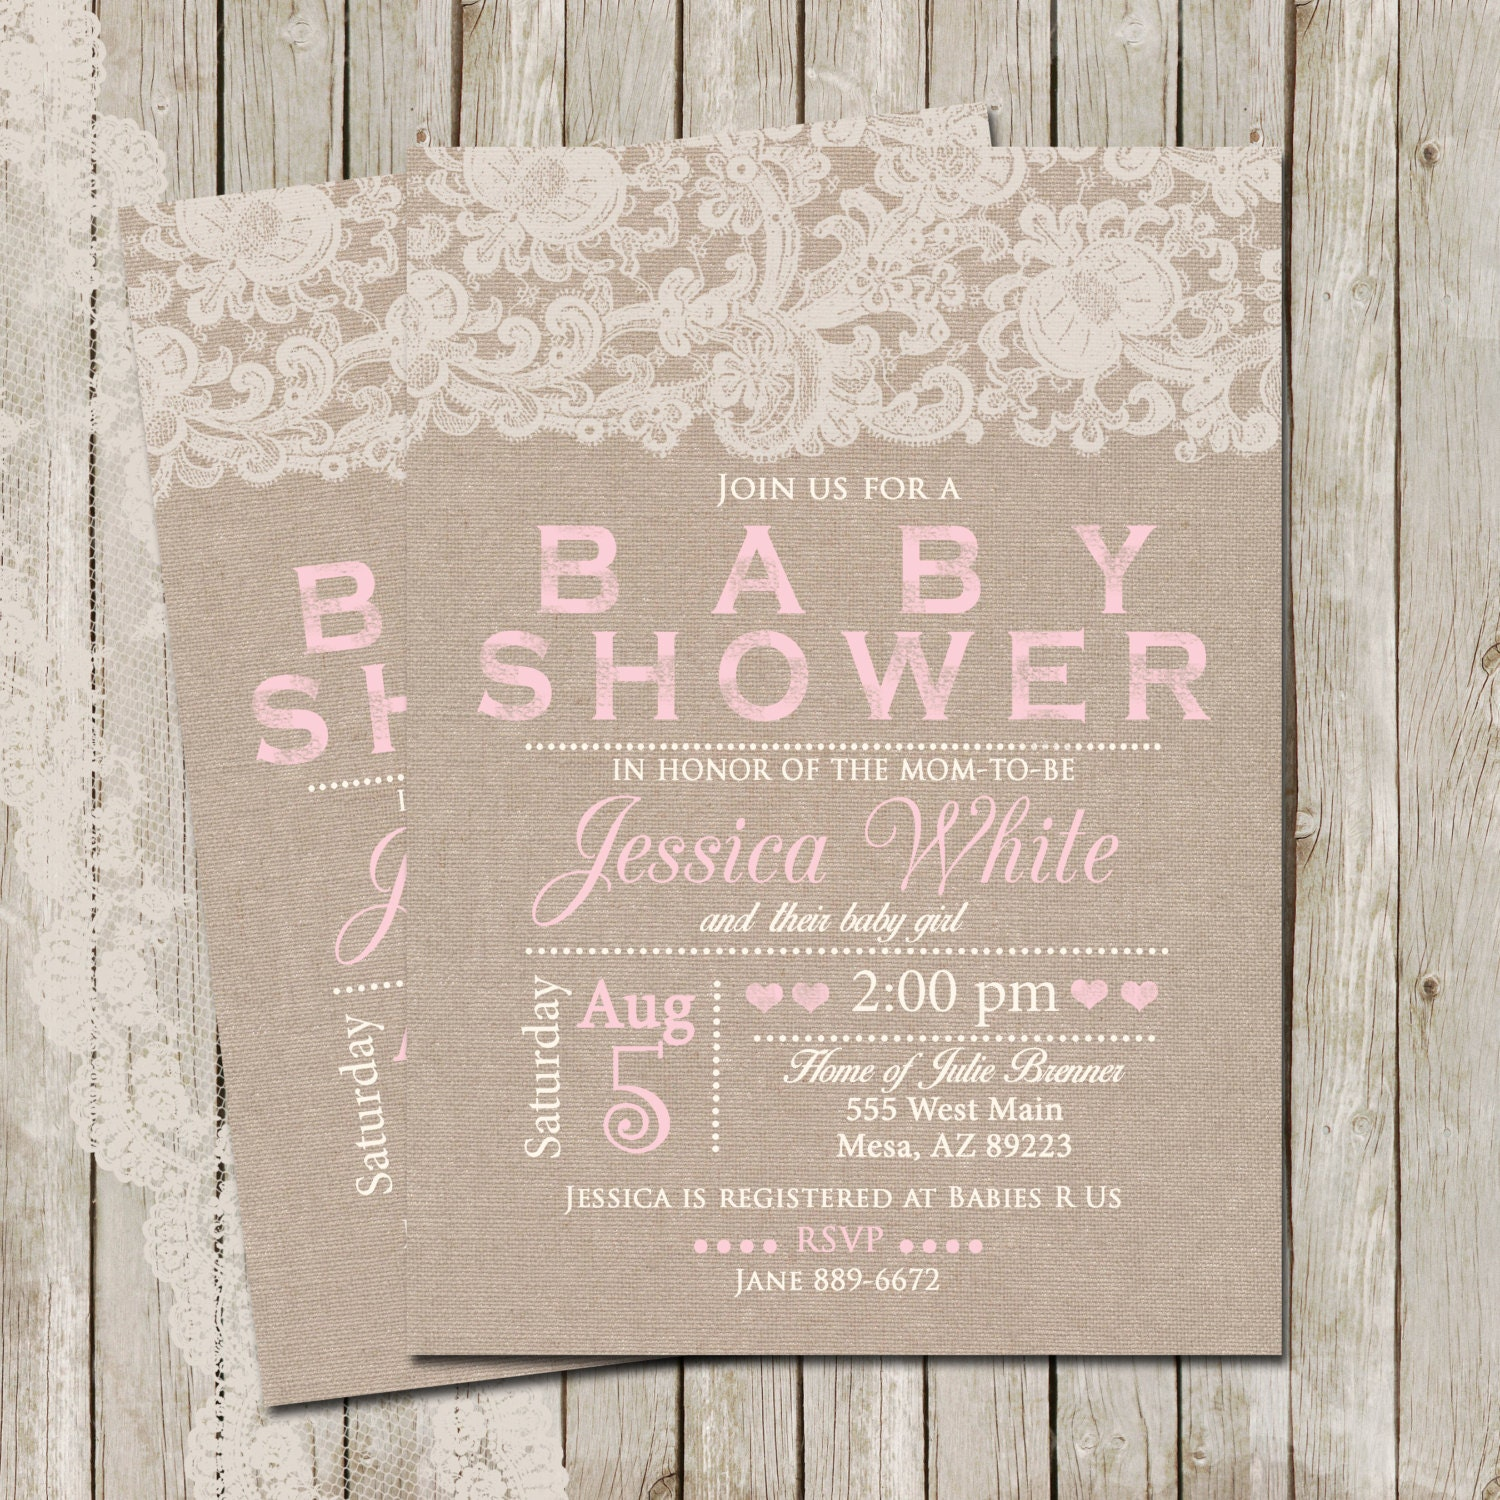 Rustic Baby Shower Invitation Burlap and Lace Invitation